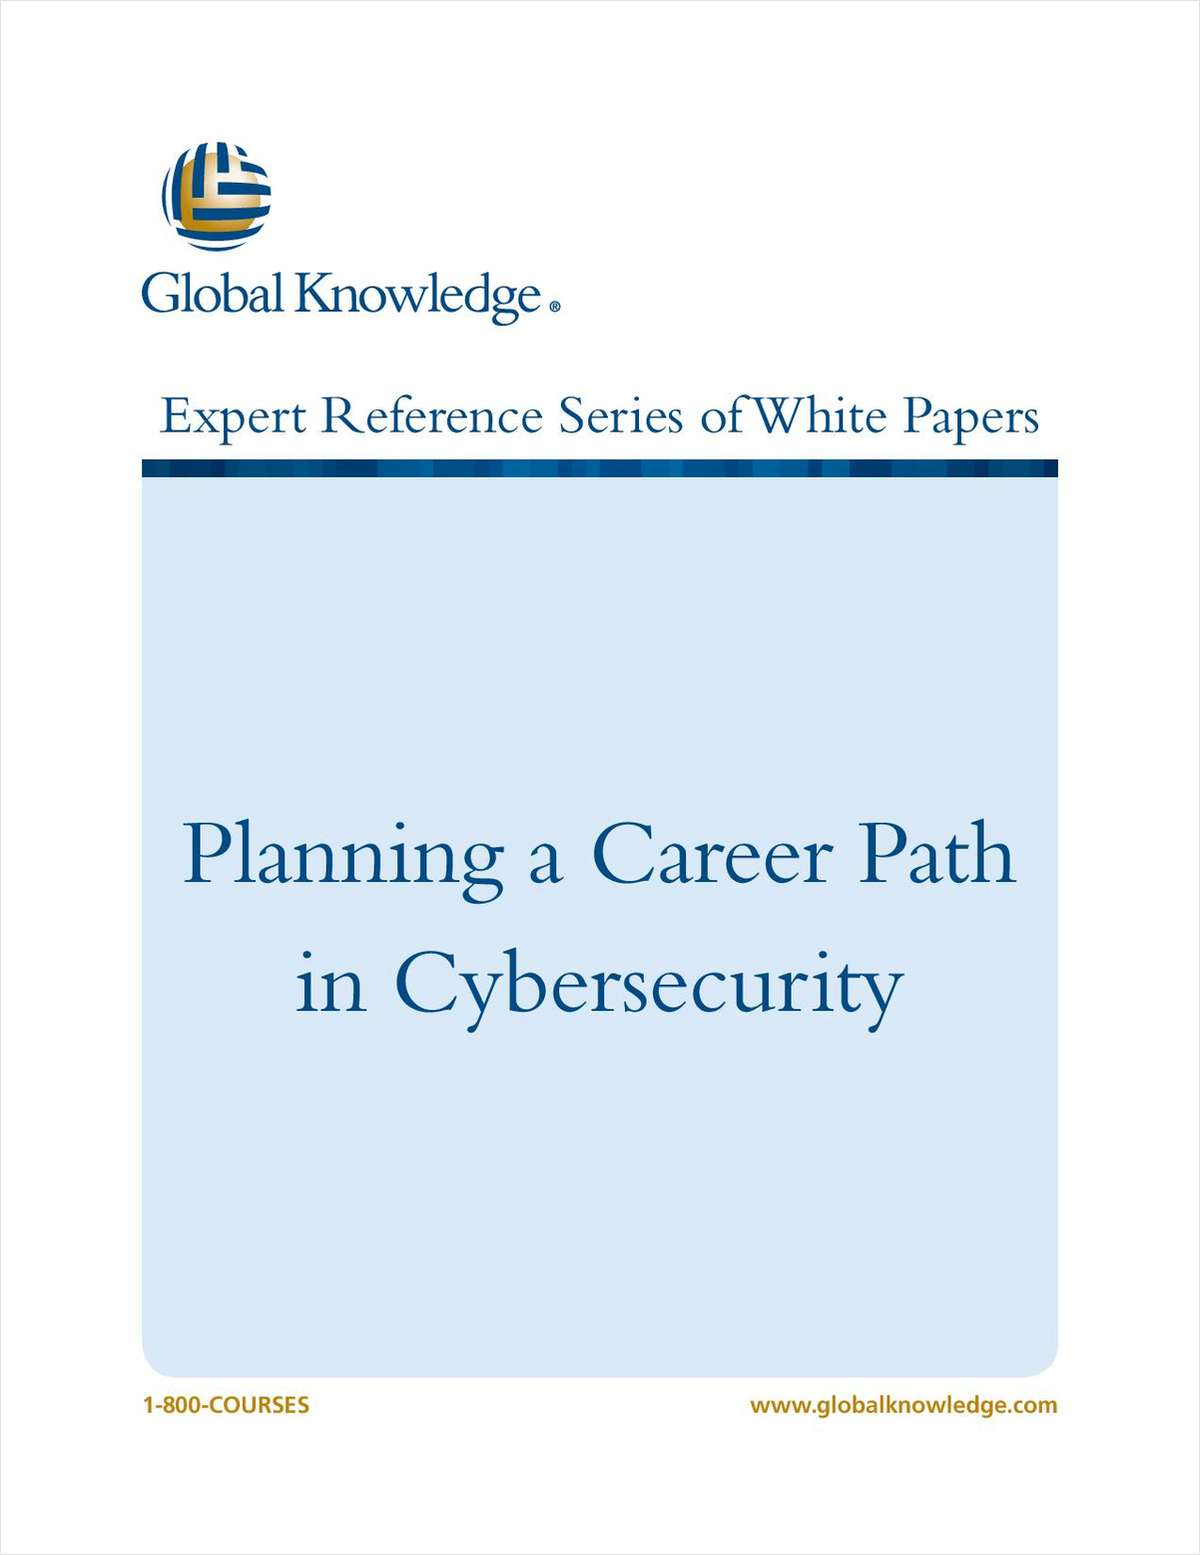 Planning a Career Path in Cybersecurity